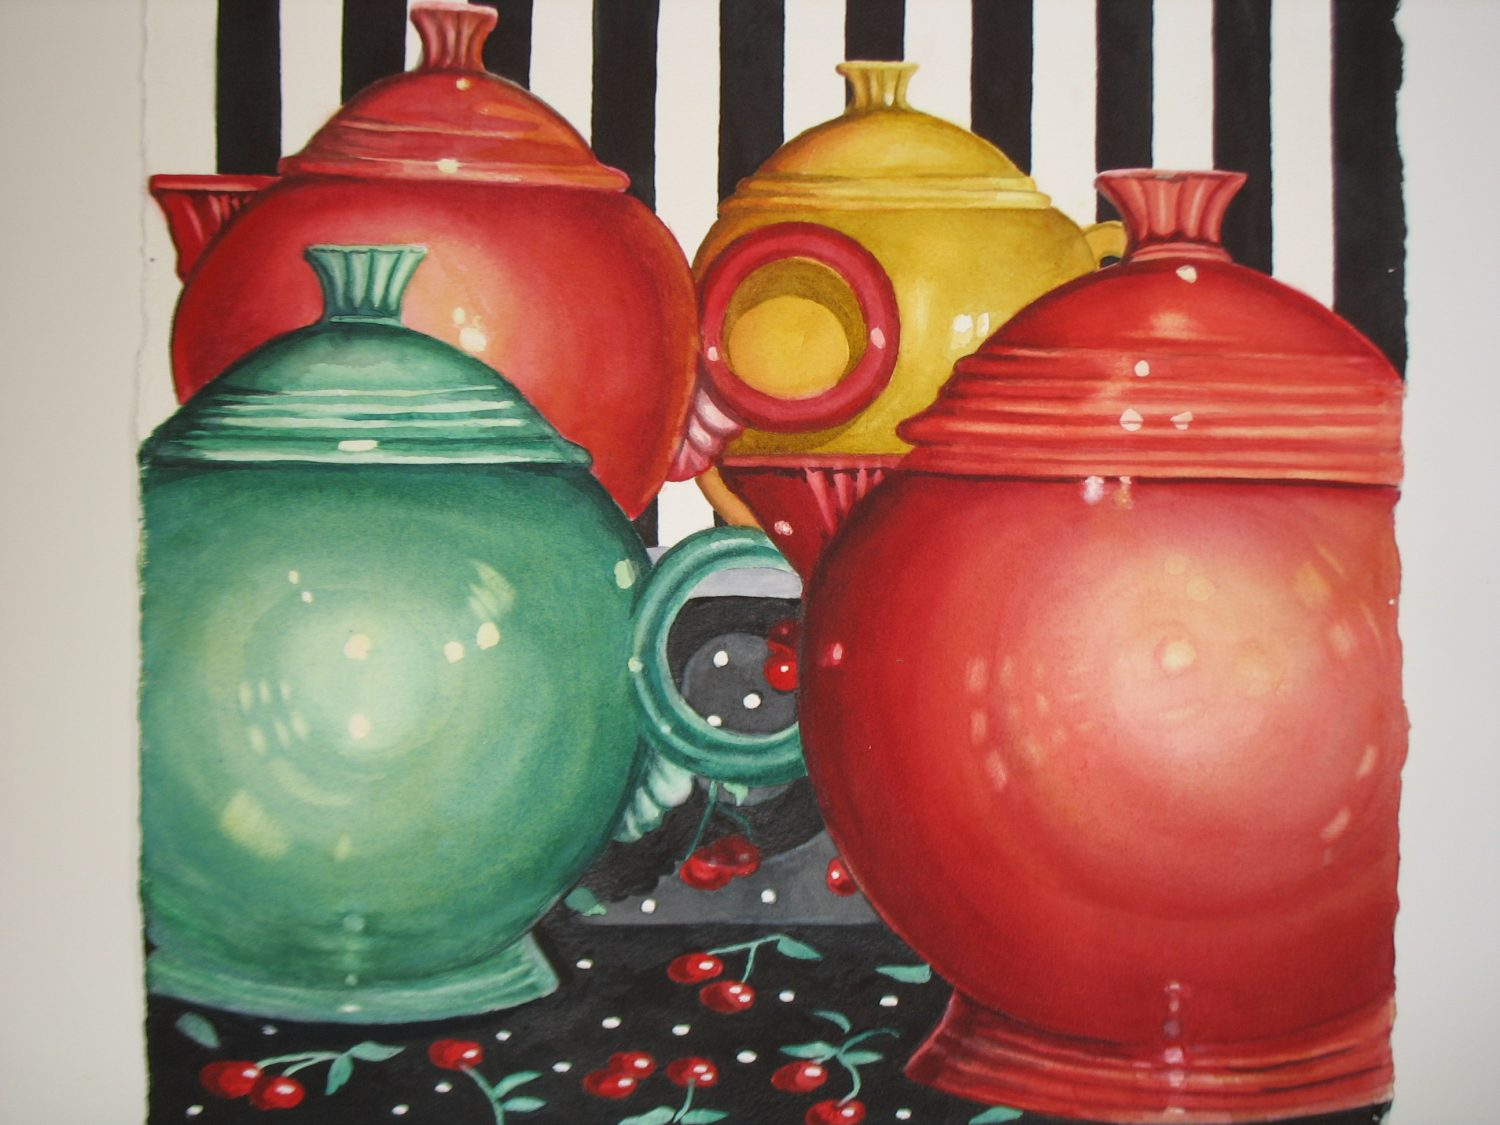 Teatime II, watercolor by Linda Abblett